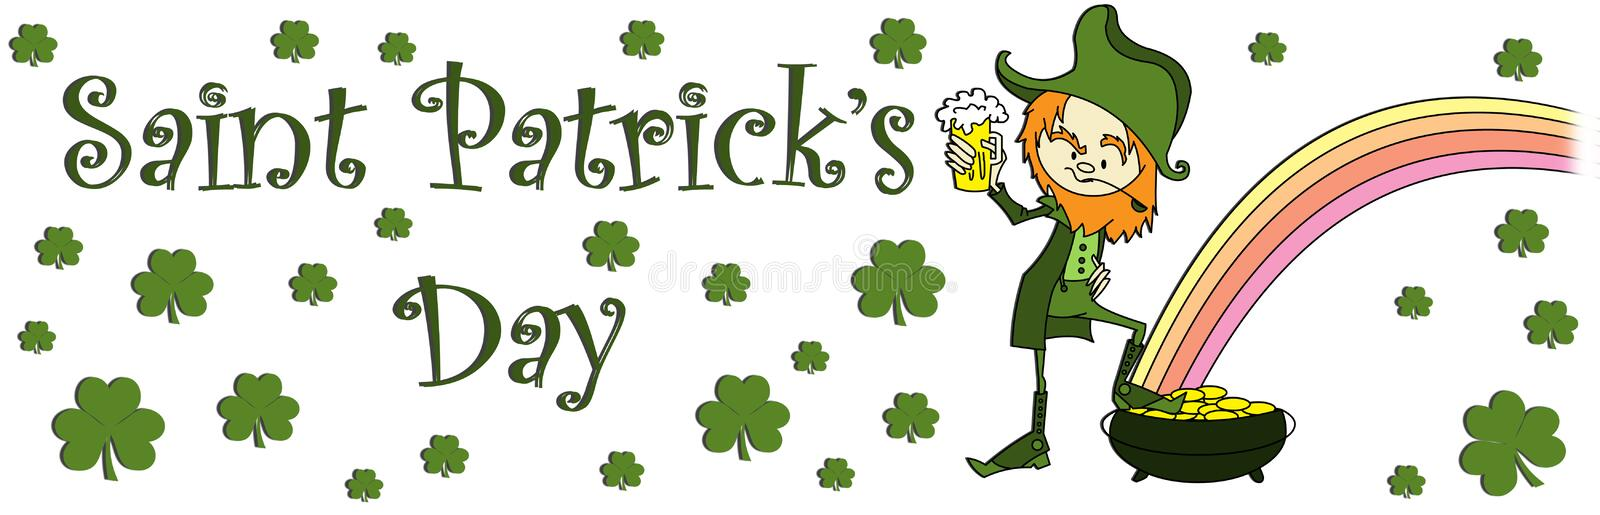 Download Sain patrick's day banner stock illustration. Image of happiness - 13356380